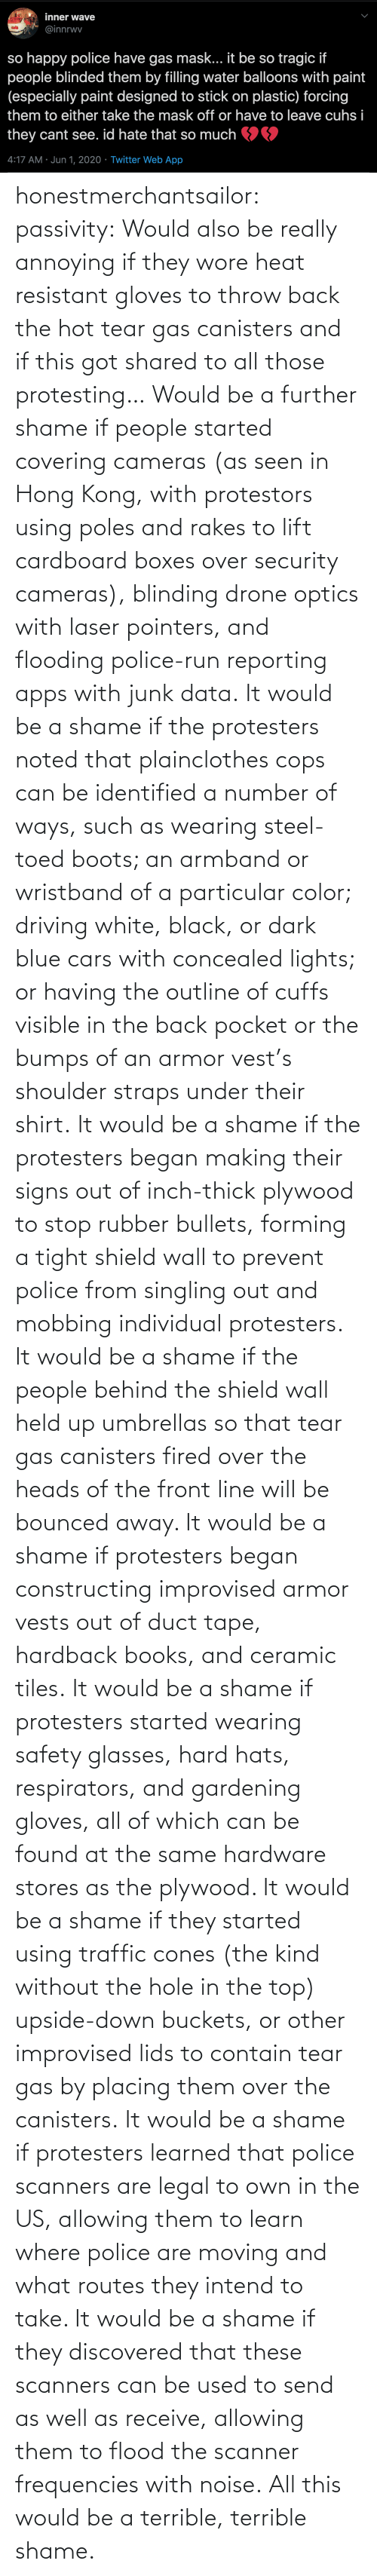 armor: honestmerchantsailor: passivity: Would also be really annoying if they wore heat resistant gloves to throw back the hot tear gas canisters and if this got shared to all those protesting… Would be a further shame if people started covering cameras (as seen in Hong Kong, with protestors using poles and rakes to lift cardboard boxes over security cameras), blinding drone optics with laser pointers, and flooding police-run reporting apps with junk data. It would be a shame if the protesters noted that plainclothes cops can be identified a number of ways, such as wearing steel-toed boots; an armband or wristband of a particular color; driving white, black, or dark blue cars with concealed lights; or having the outline of cuffs visible in the back pocket or the bumps of an armor vest's shoulder straps under their shirt. It would be a shame if the protesters began making their signs out of inch-thick plywood to stop rubber bullets, forming a tight shield wall to prevent police from singling out and mobbing individual protesters. It would be a shame if the people behind the shield wall held up umbrellas so that tear gas canisters fired over the heads of the front line will be bounced away. It would be a shame if protesters began constructing improvised armor vests out of duct tape, hardback books, and ceramic tiles. It would be a shame if protesters started wearing safety glasses, hard hats, respirators, and gardening gloves, all of which can be found at the same hardware stores as the plywood. It would be a shame if they started using traffic cones (the kind without the hole in the top) upside-down buckets, or other improvised lids to contain tear gas by placing them over the canisters. It would be a shame if protesters learned that police scanners are legal to own in the US, allowing them to learn where police are moving and what routes they intend to take. It would be a shame if they discovered that these scanners can be used to send as well as receive, allowing them to flood the scanner frequencies with noise. All this would be a terrible, terrible shame.